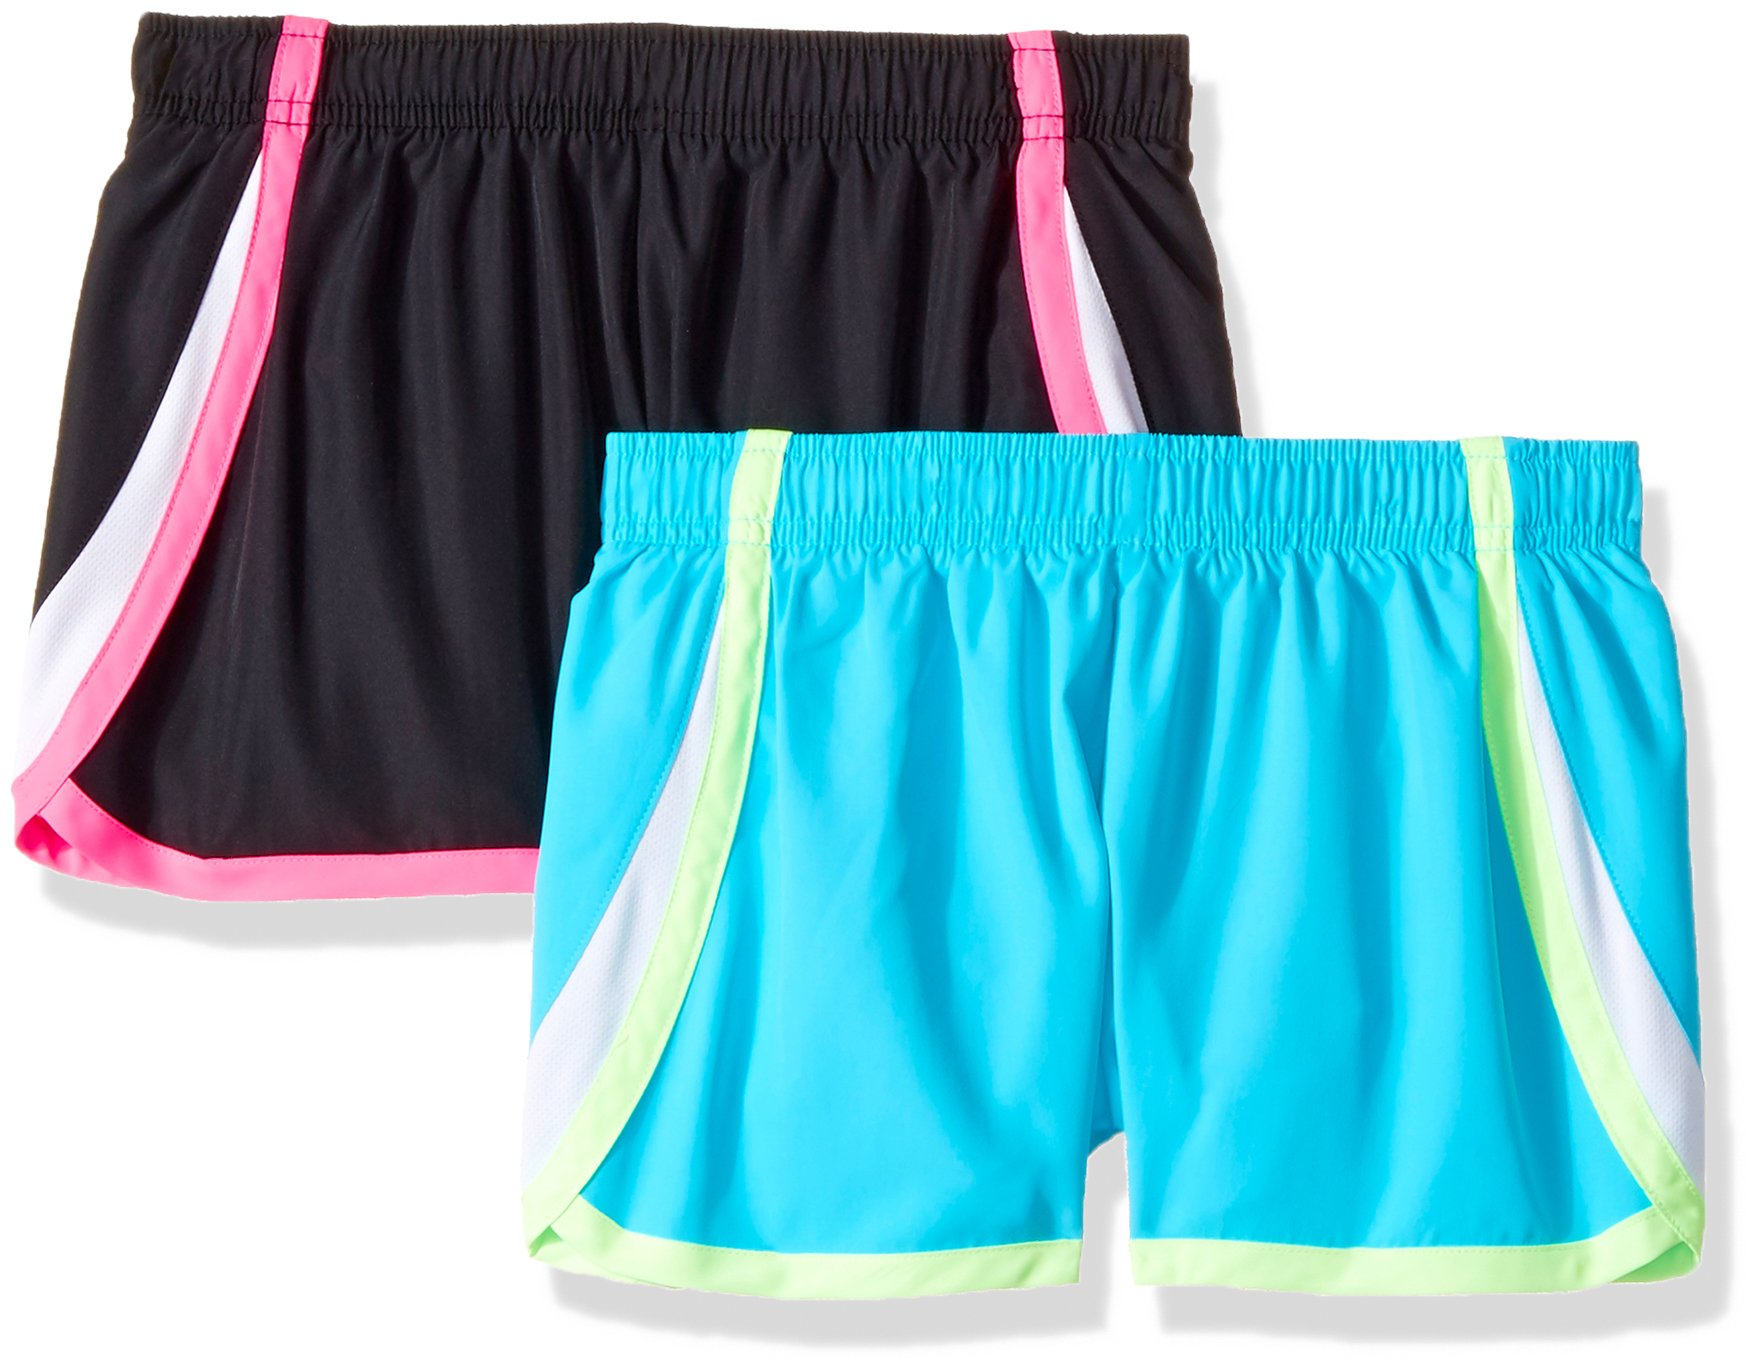 Hanes Big Girls' Sport Woven Performance Running Short (Pack of 2), Cool Me Blue/Black, S